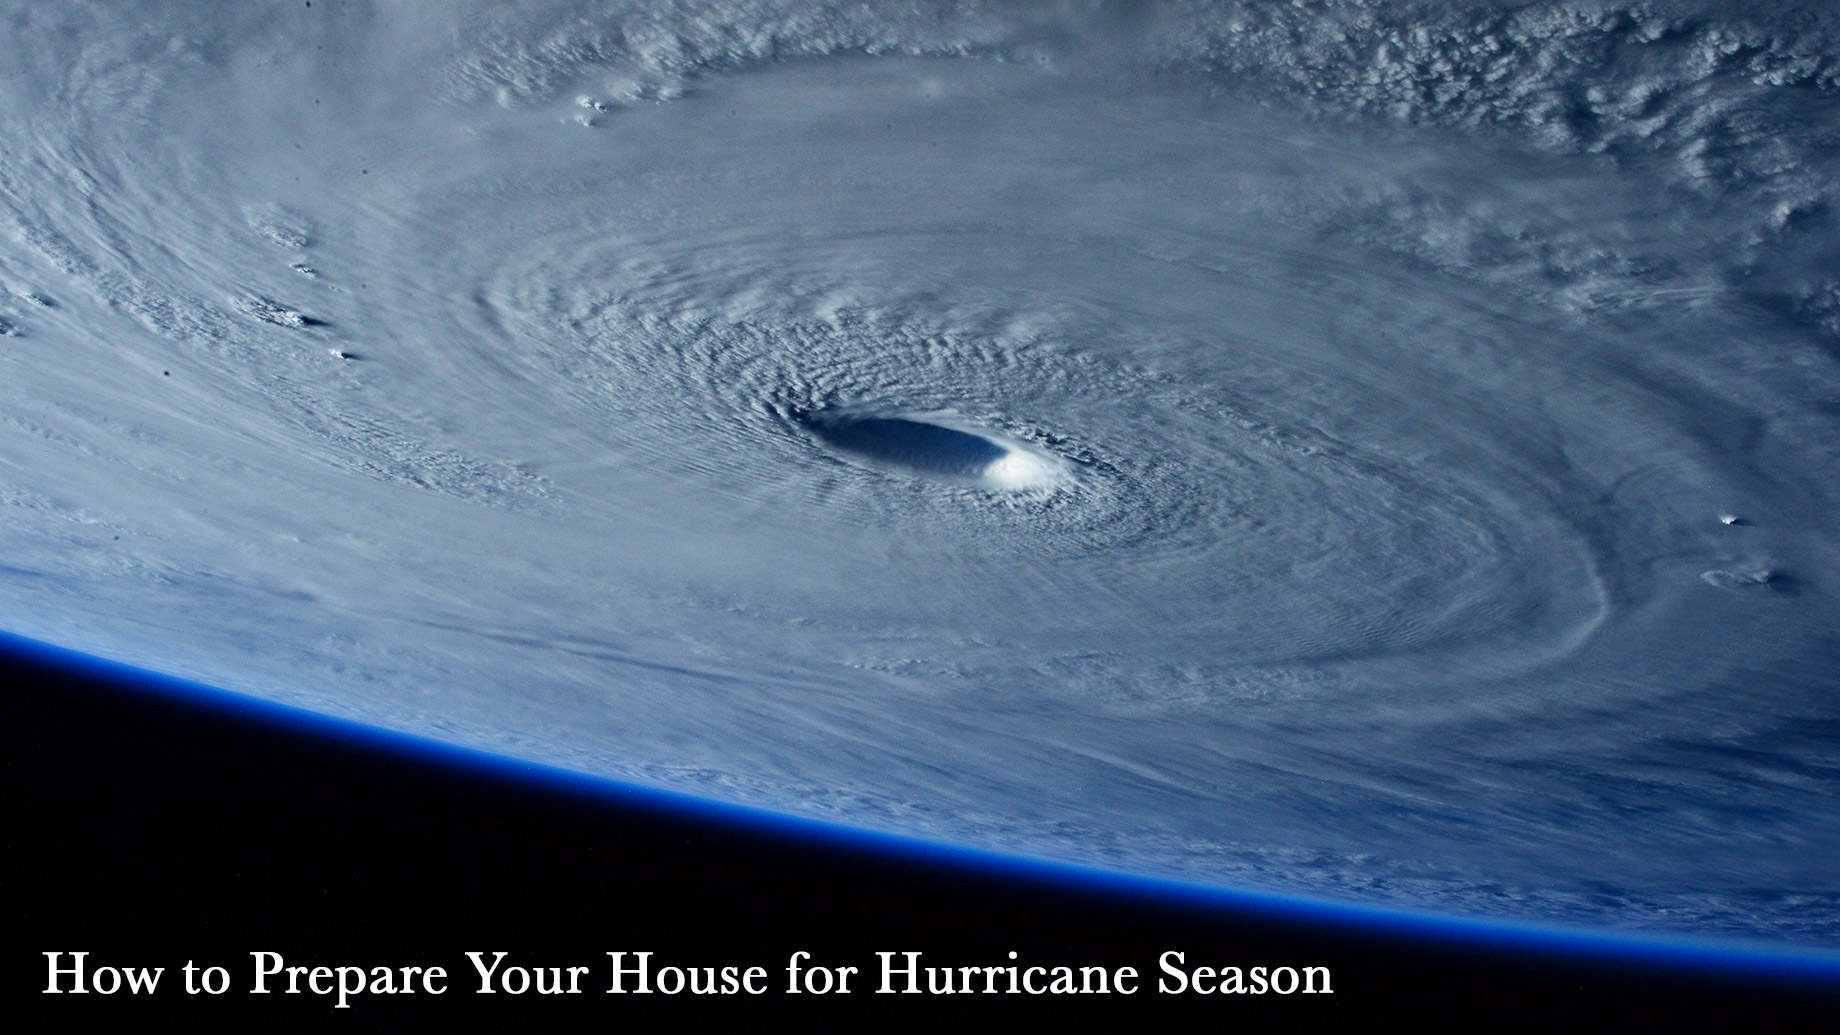 How to Prepare Your House for Hurricane Season